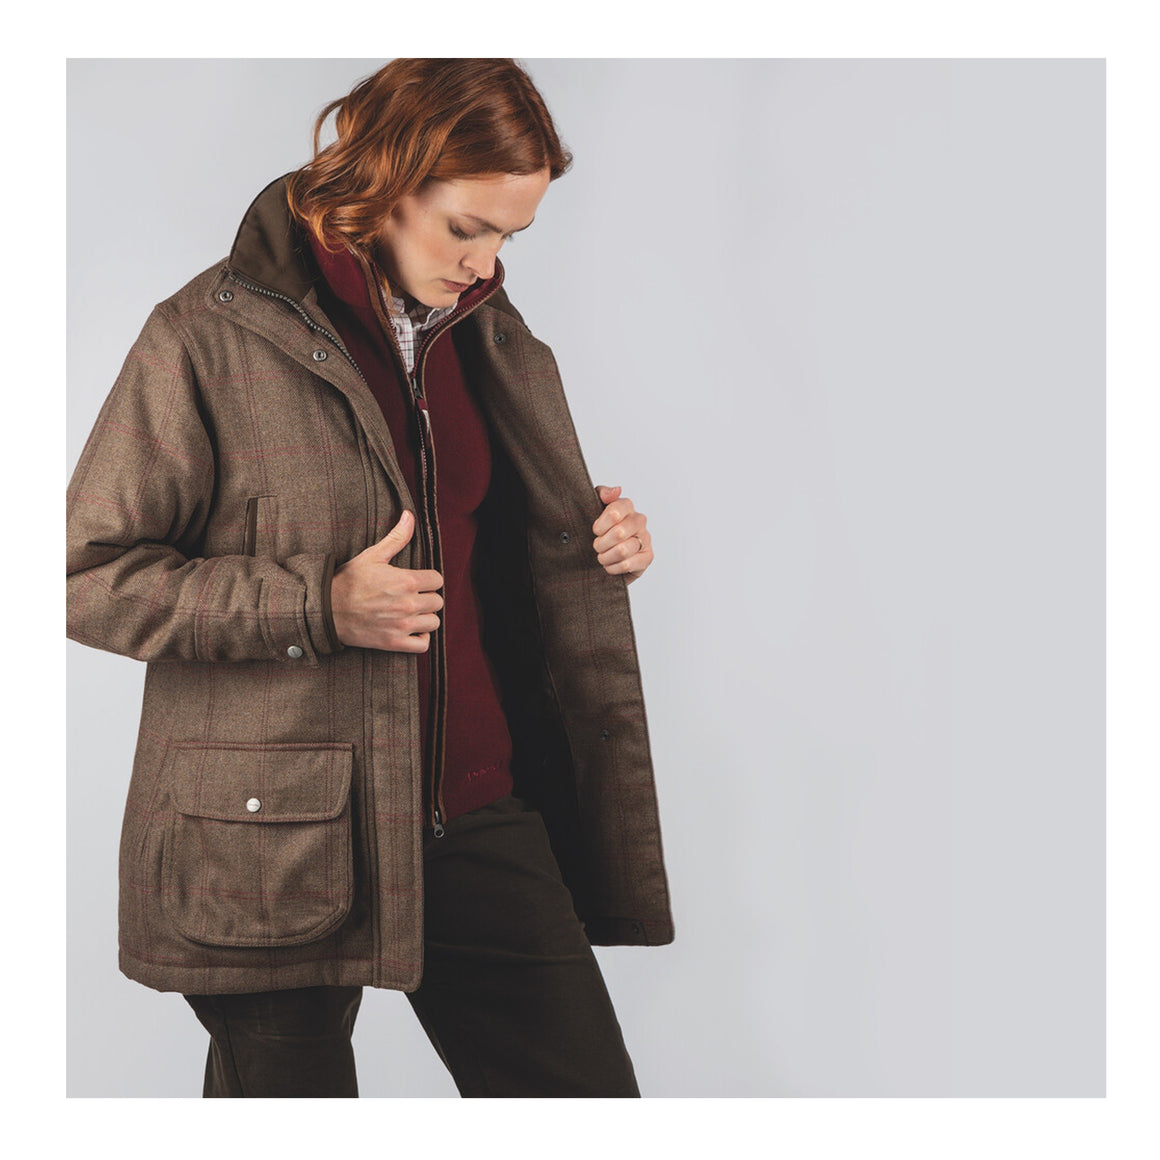 Ptarmigan Tweed Coat  for Women in Sussex Tweed